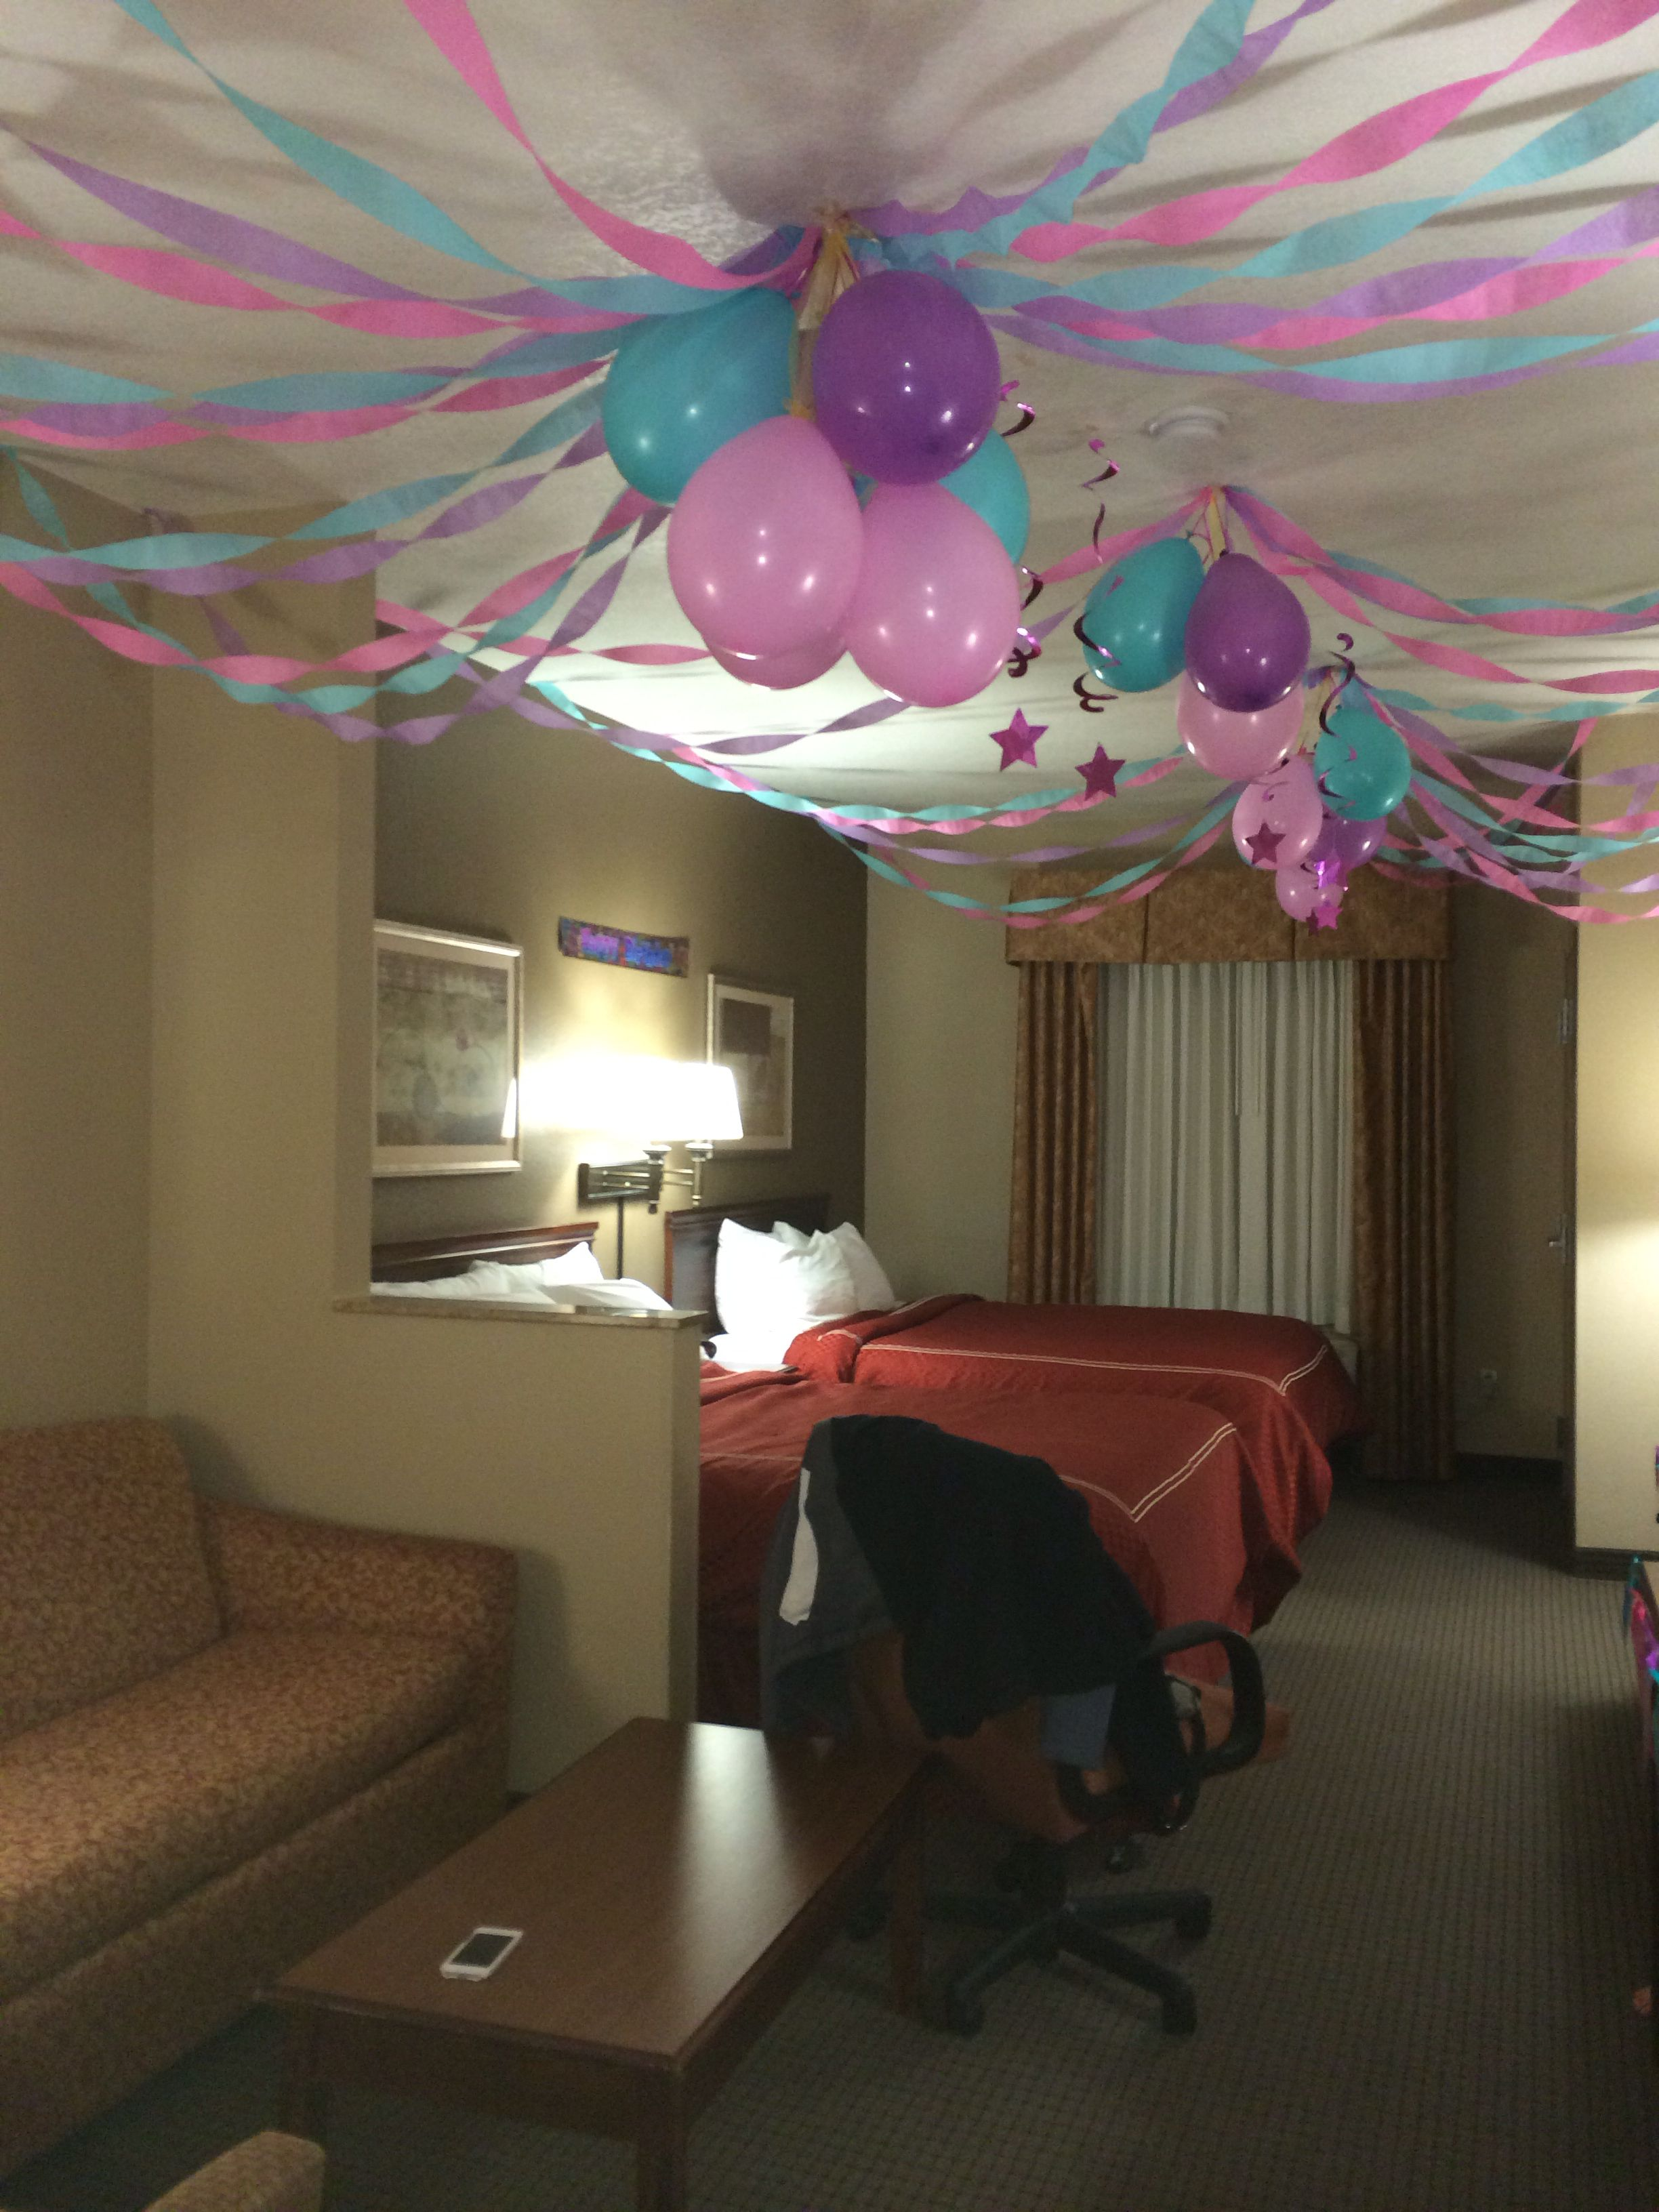 Birthday Party In A Hotel Room Invertedballons Streamers Girlsbirthday